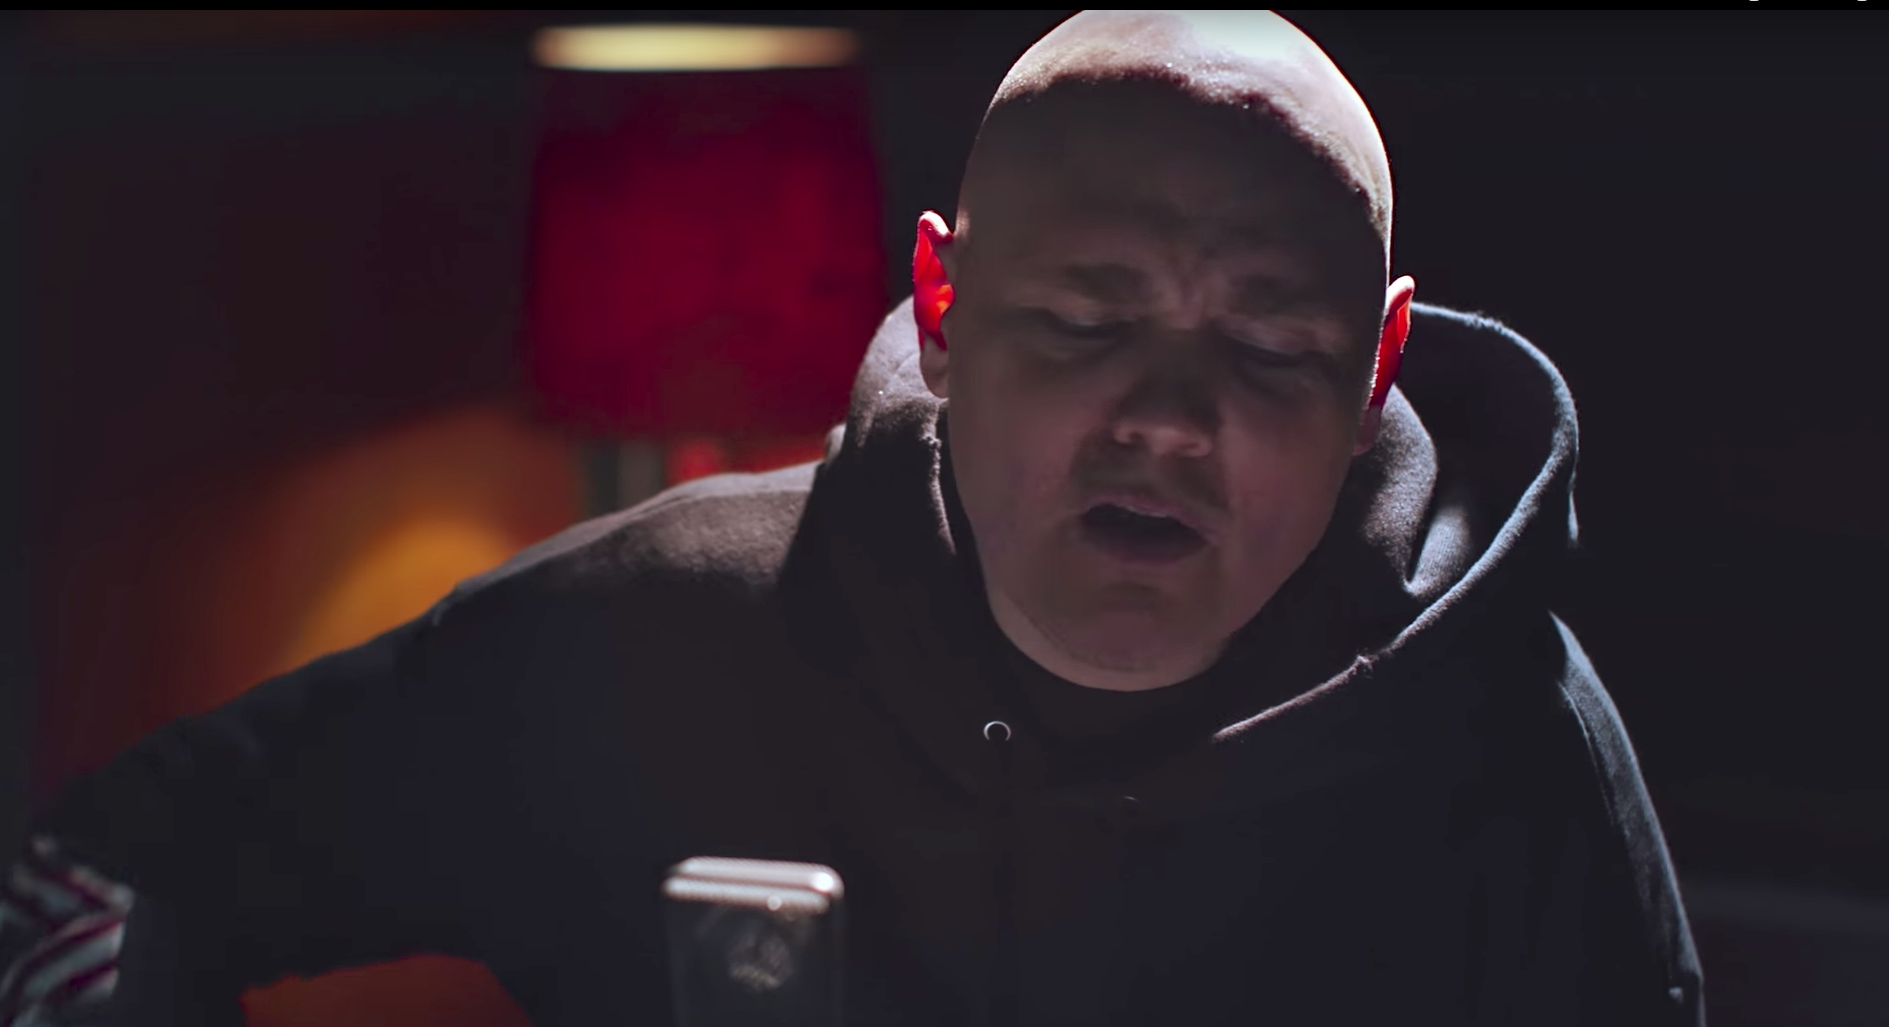 watch william patrick corgan�s intense cover of miley